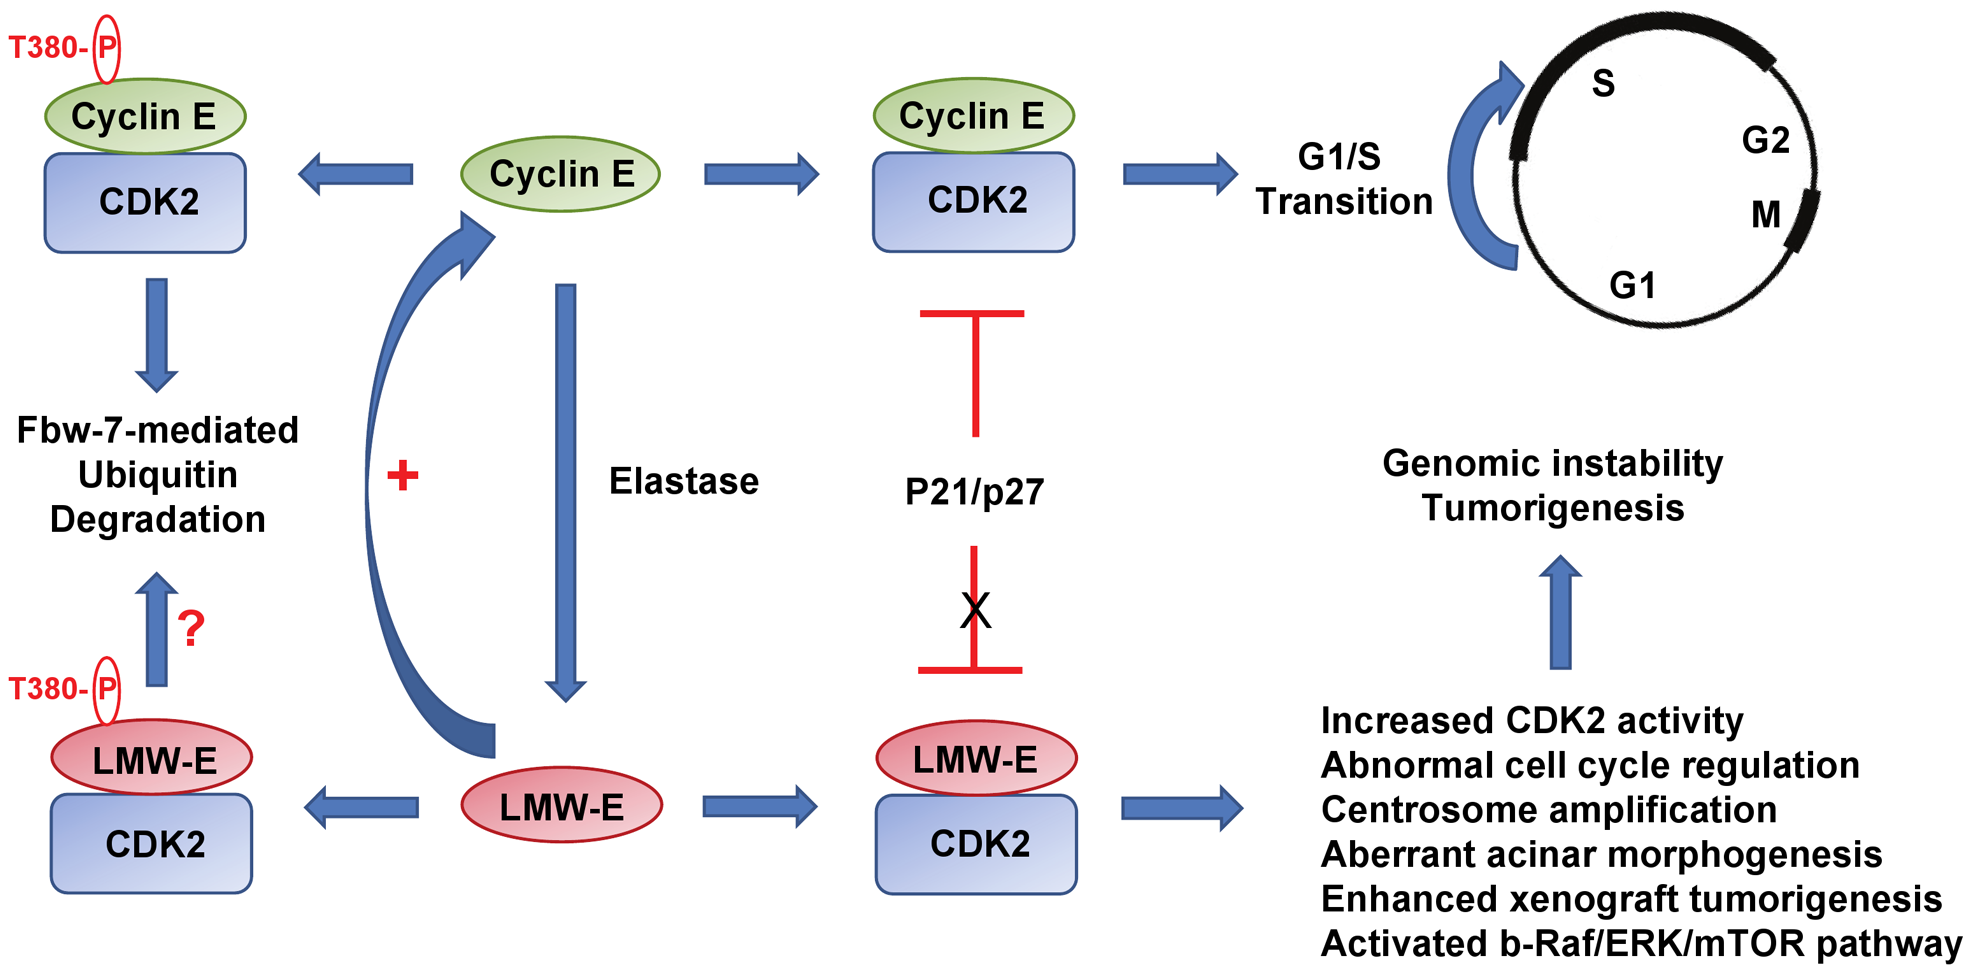 Low molecular weight cyclin E promotes tumorigenesis.